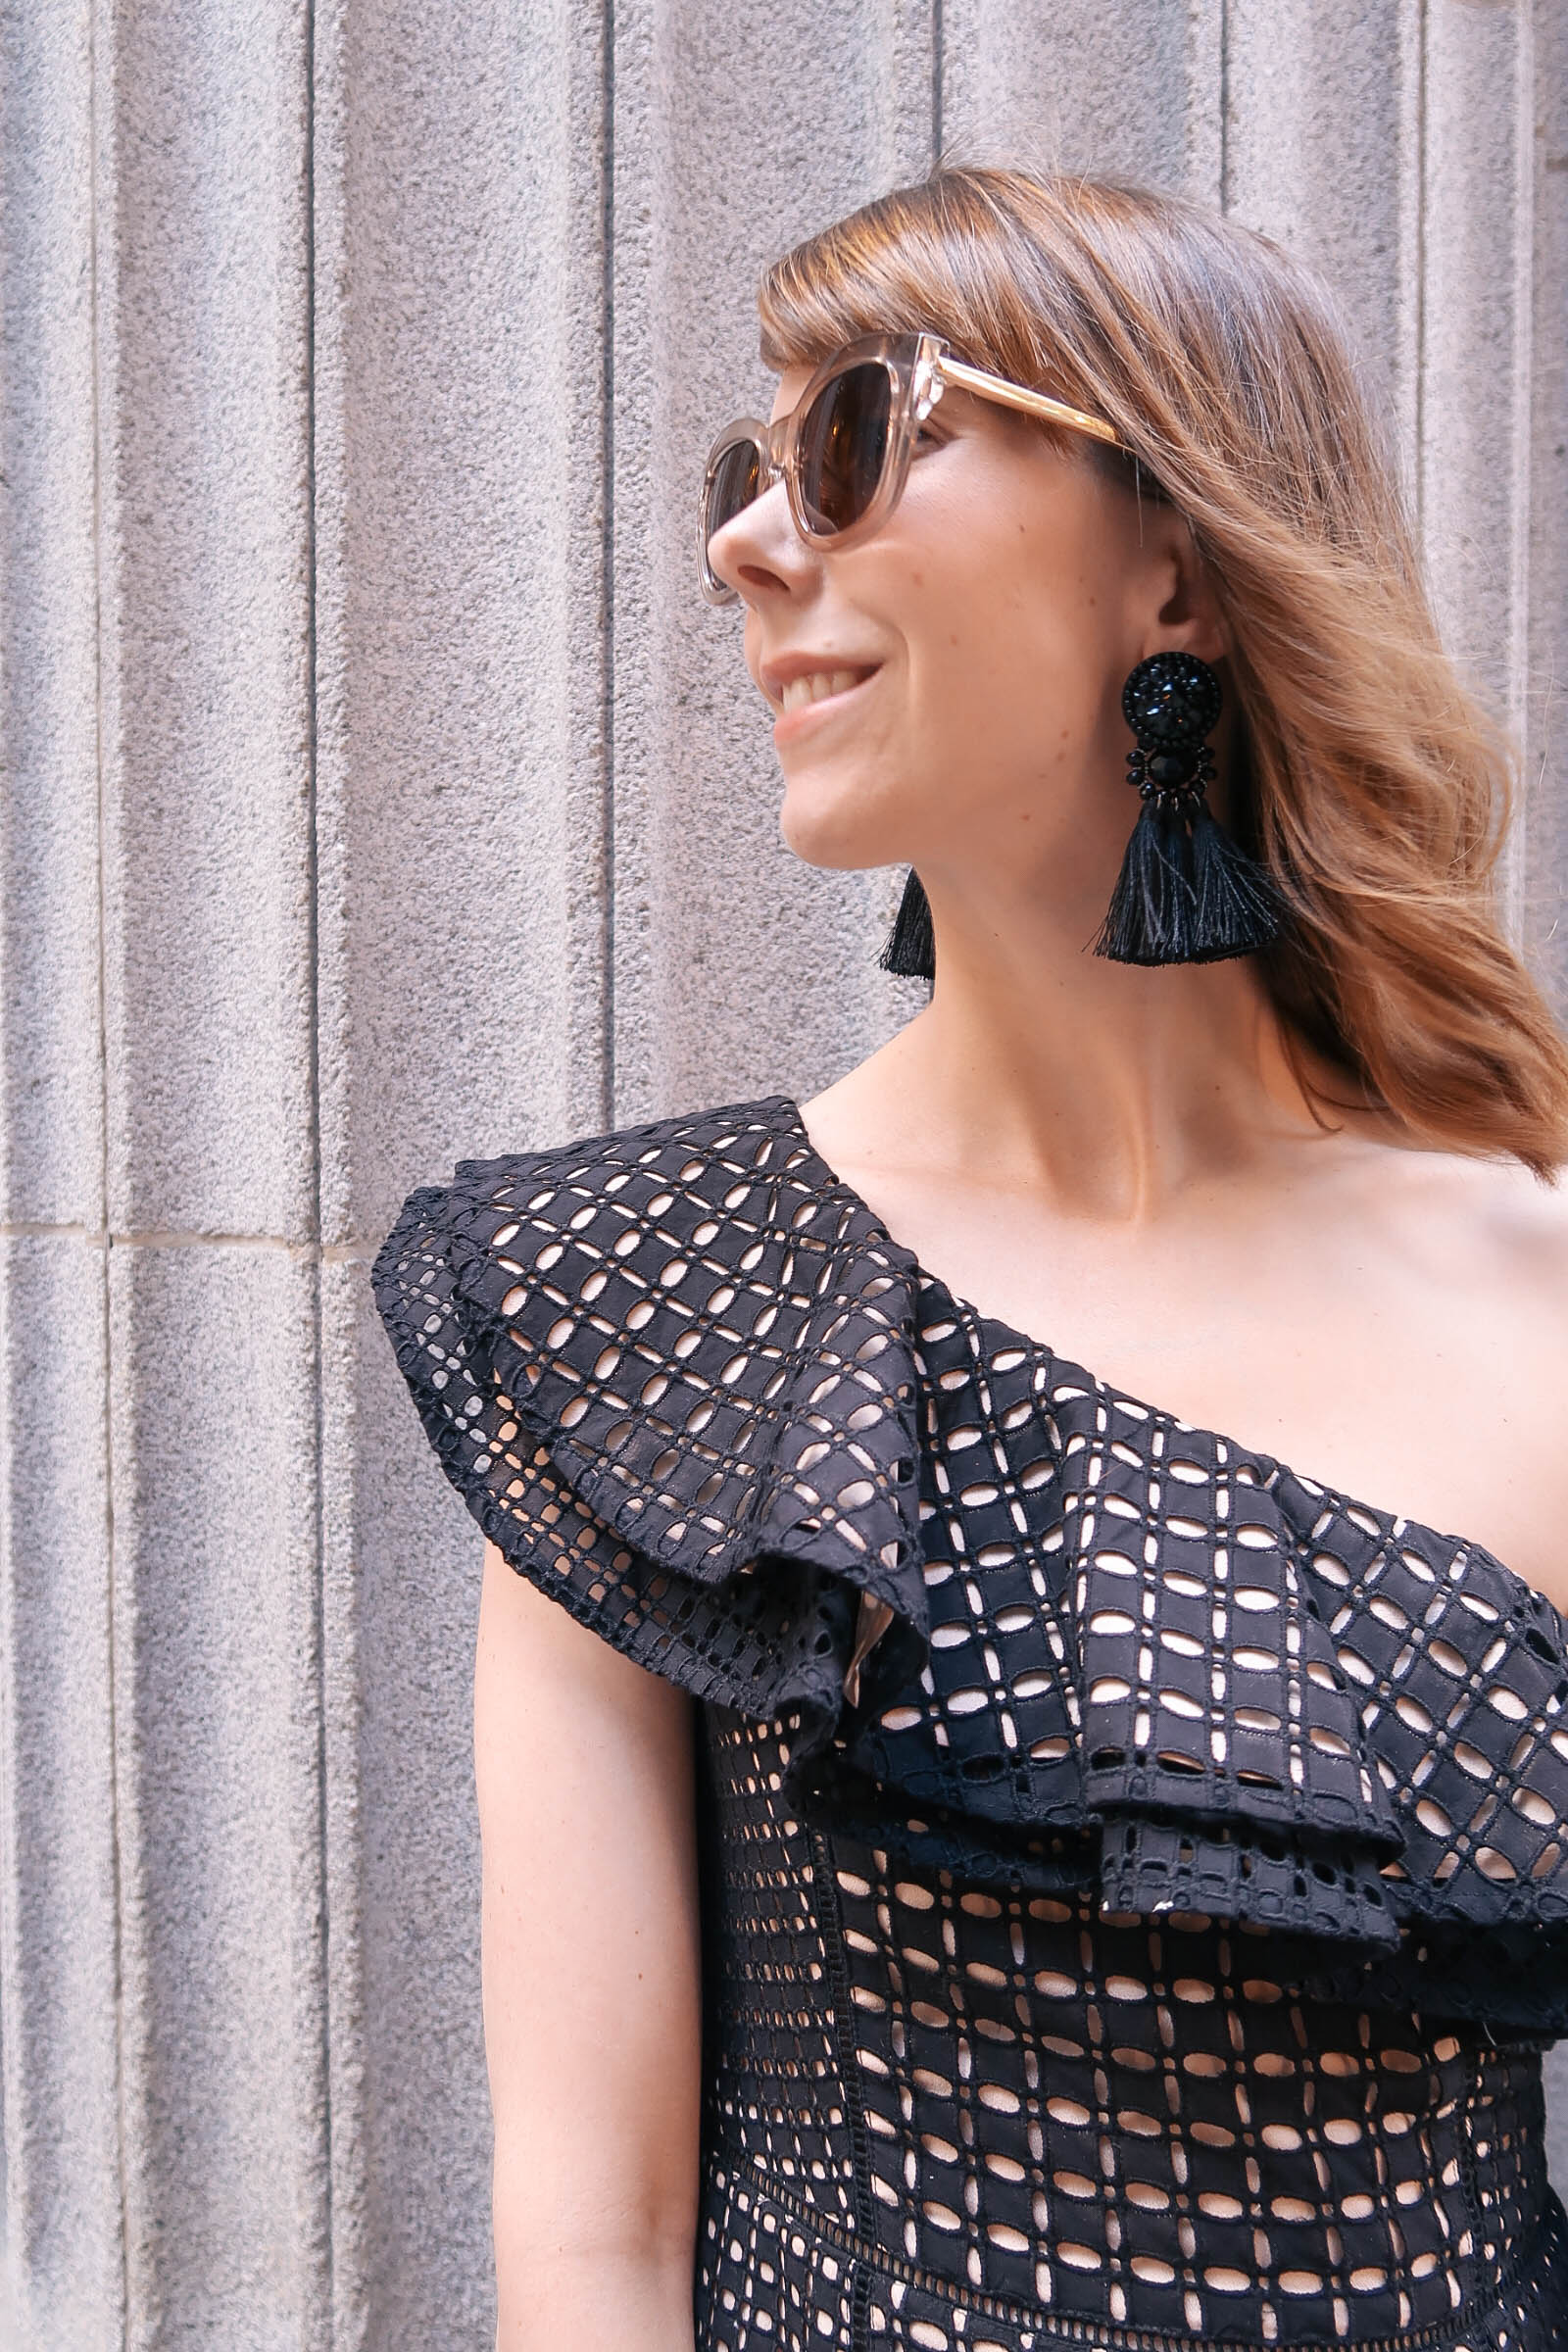 J.Crew one shoulder dress, Sam Edelman Heels, Topshop beaded earrings| A City Wedding in Chicago | Sundays and Somedays